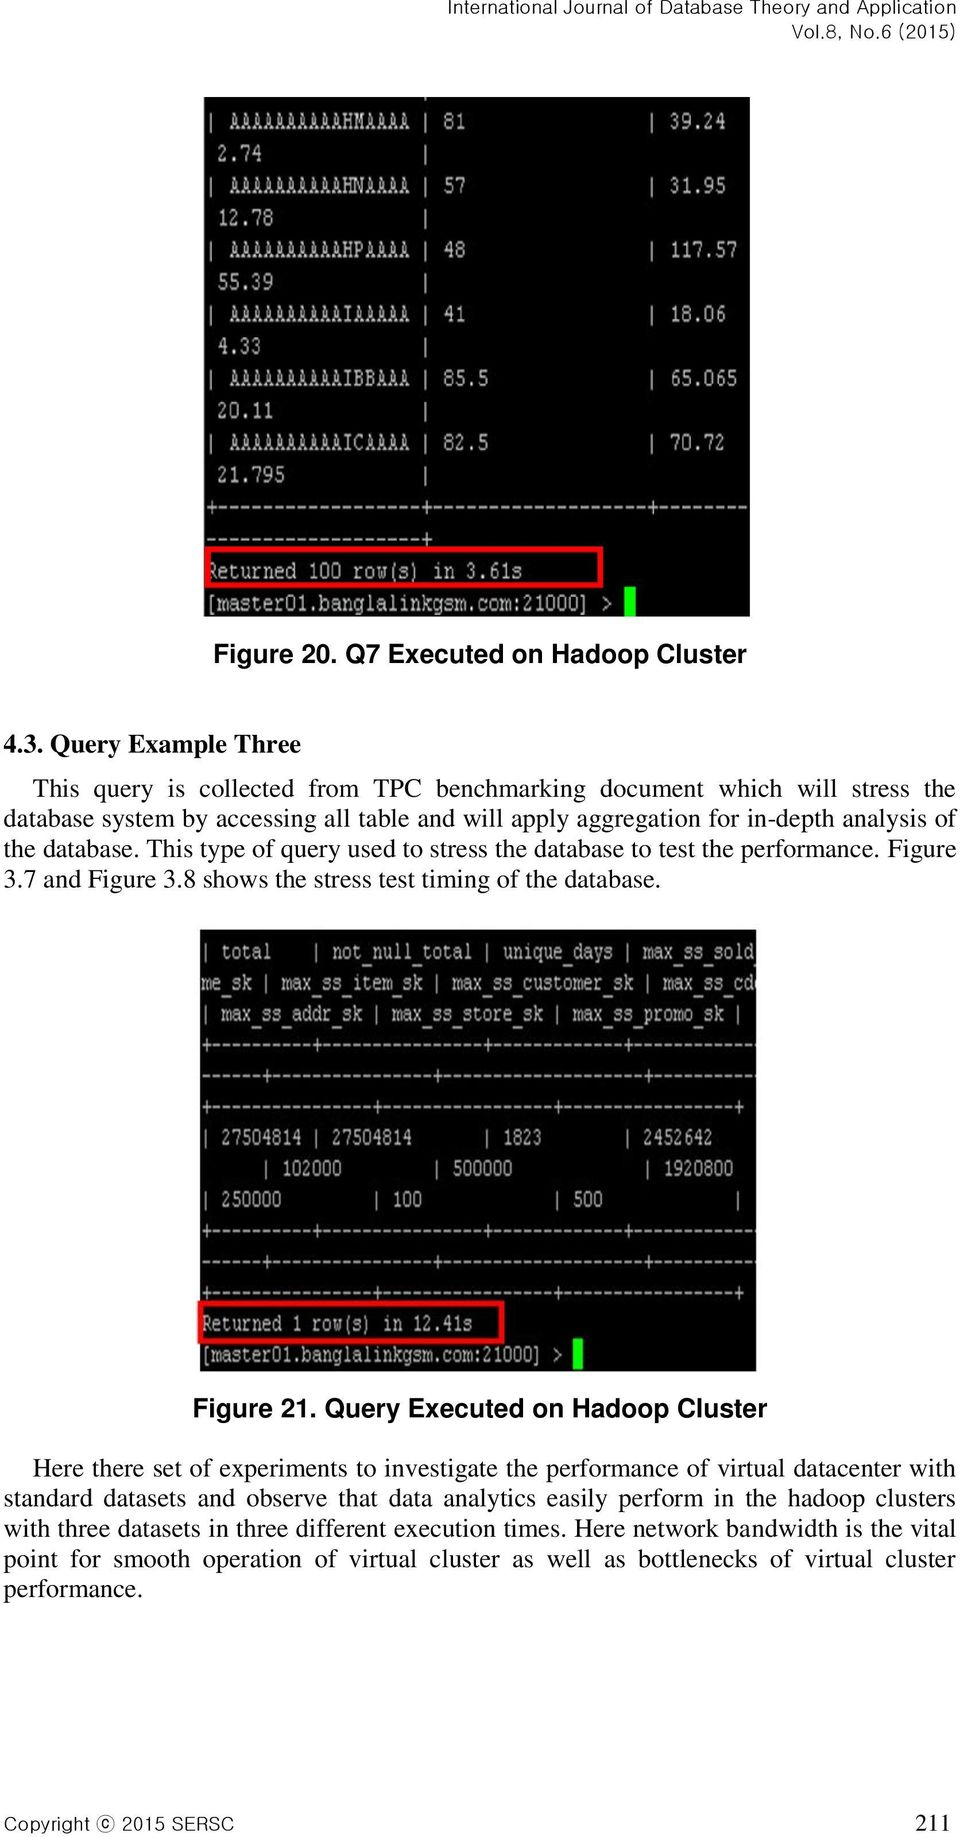 database. This type of query used to stress the database to test the performance. Figure 3.7 and Figure 3.8 shows the stress test timing of the database. Figure 21.